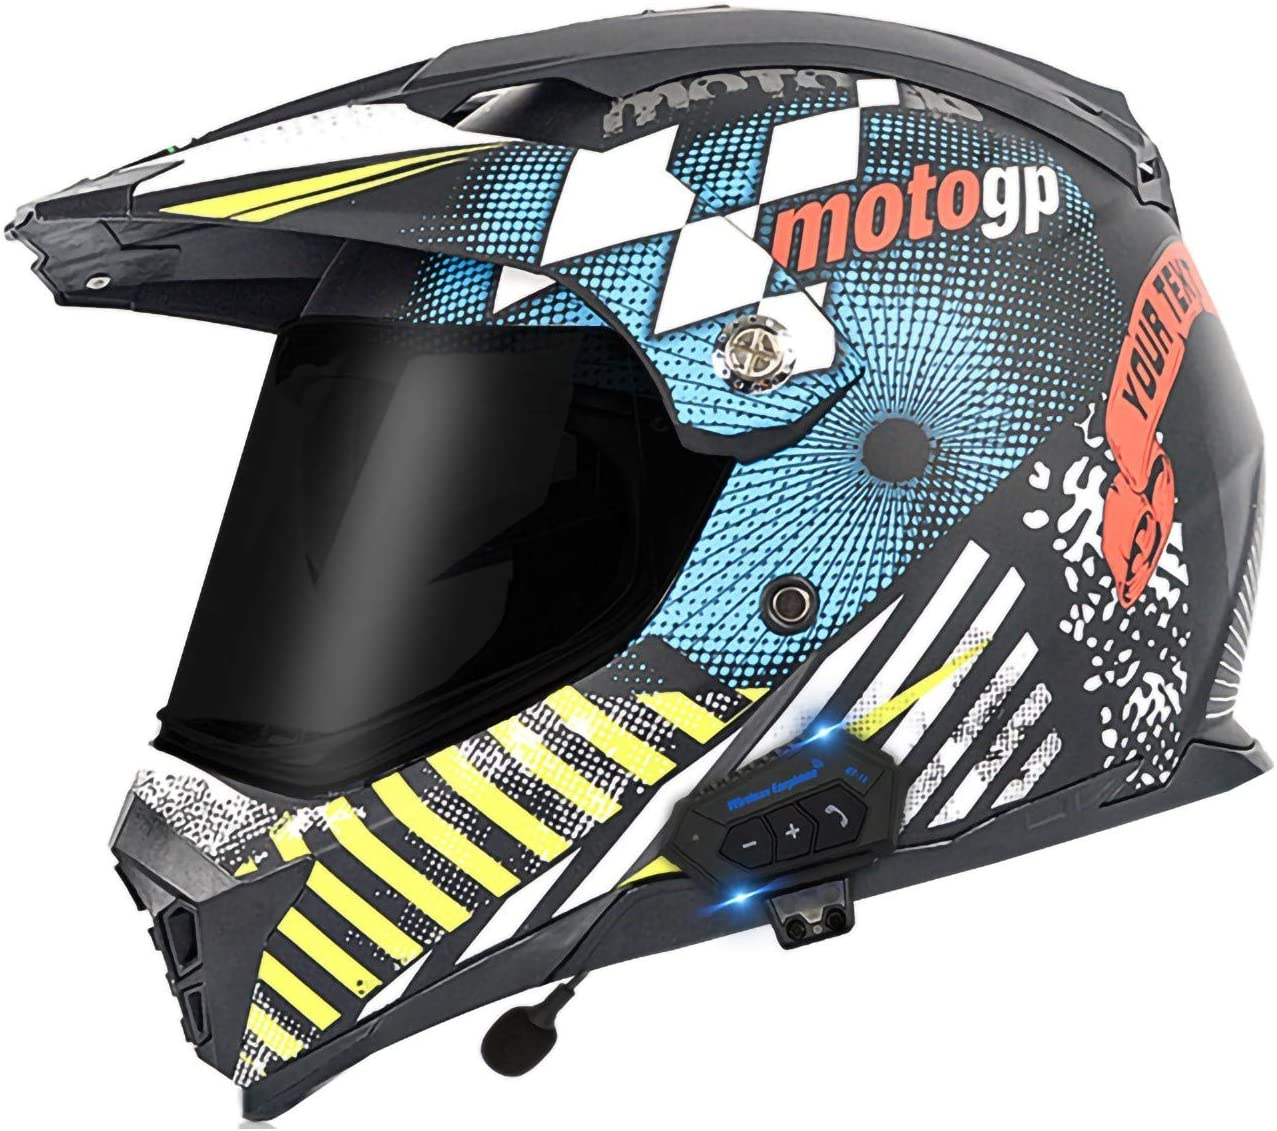 ZLYJ Manufacturer direct delivery Motocross Helmet with Integrated Offroad Bluetooth Import Headset